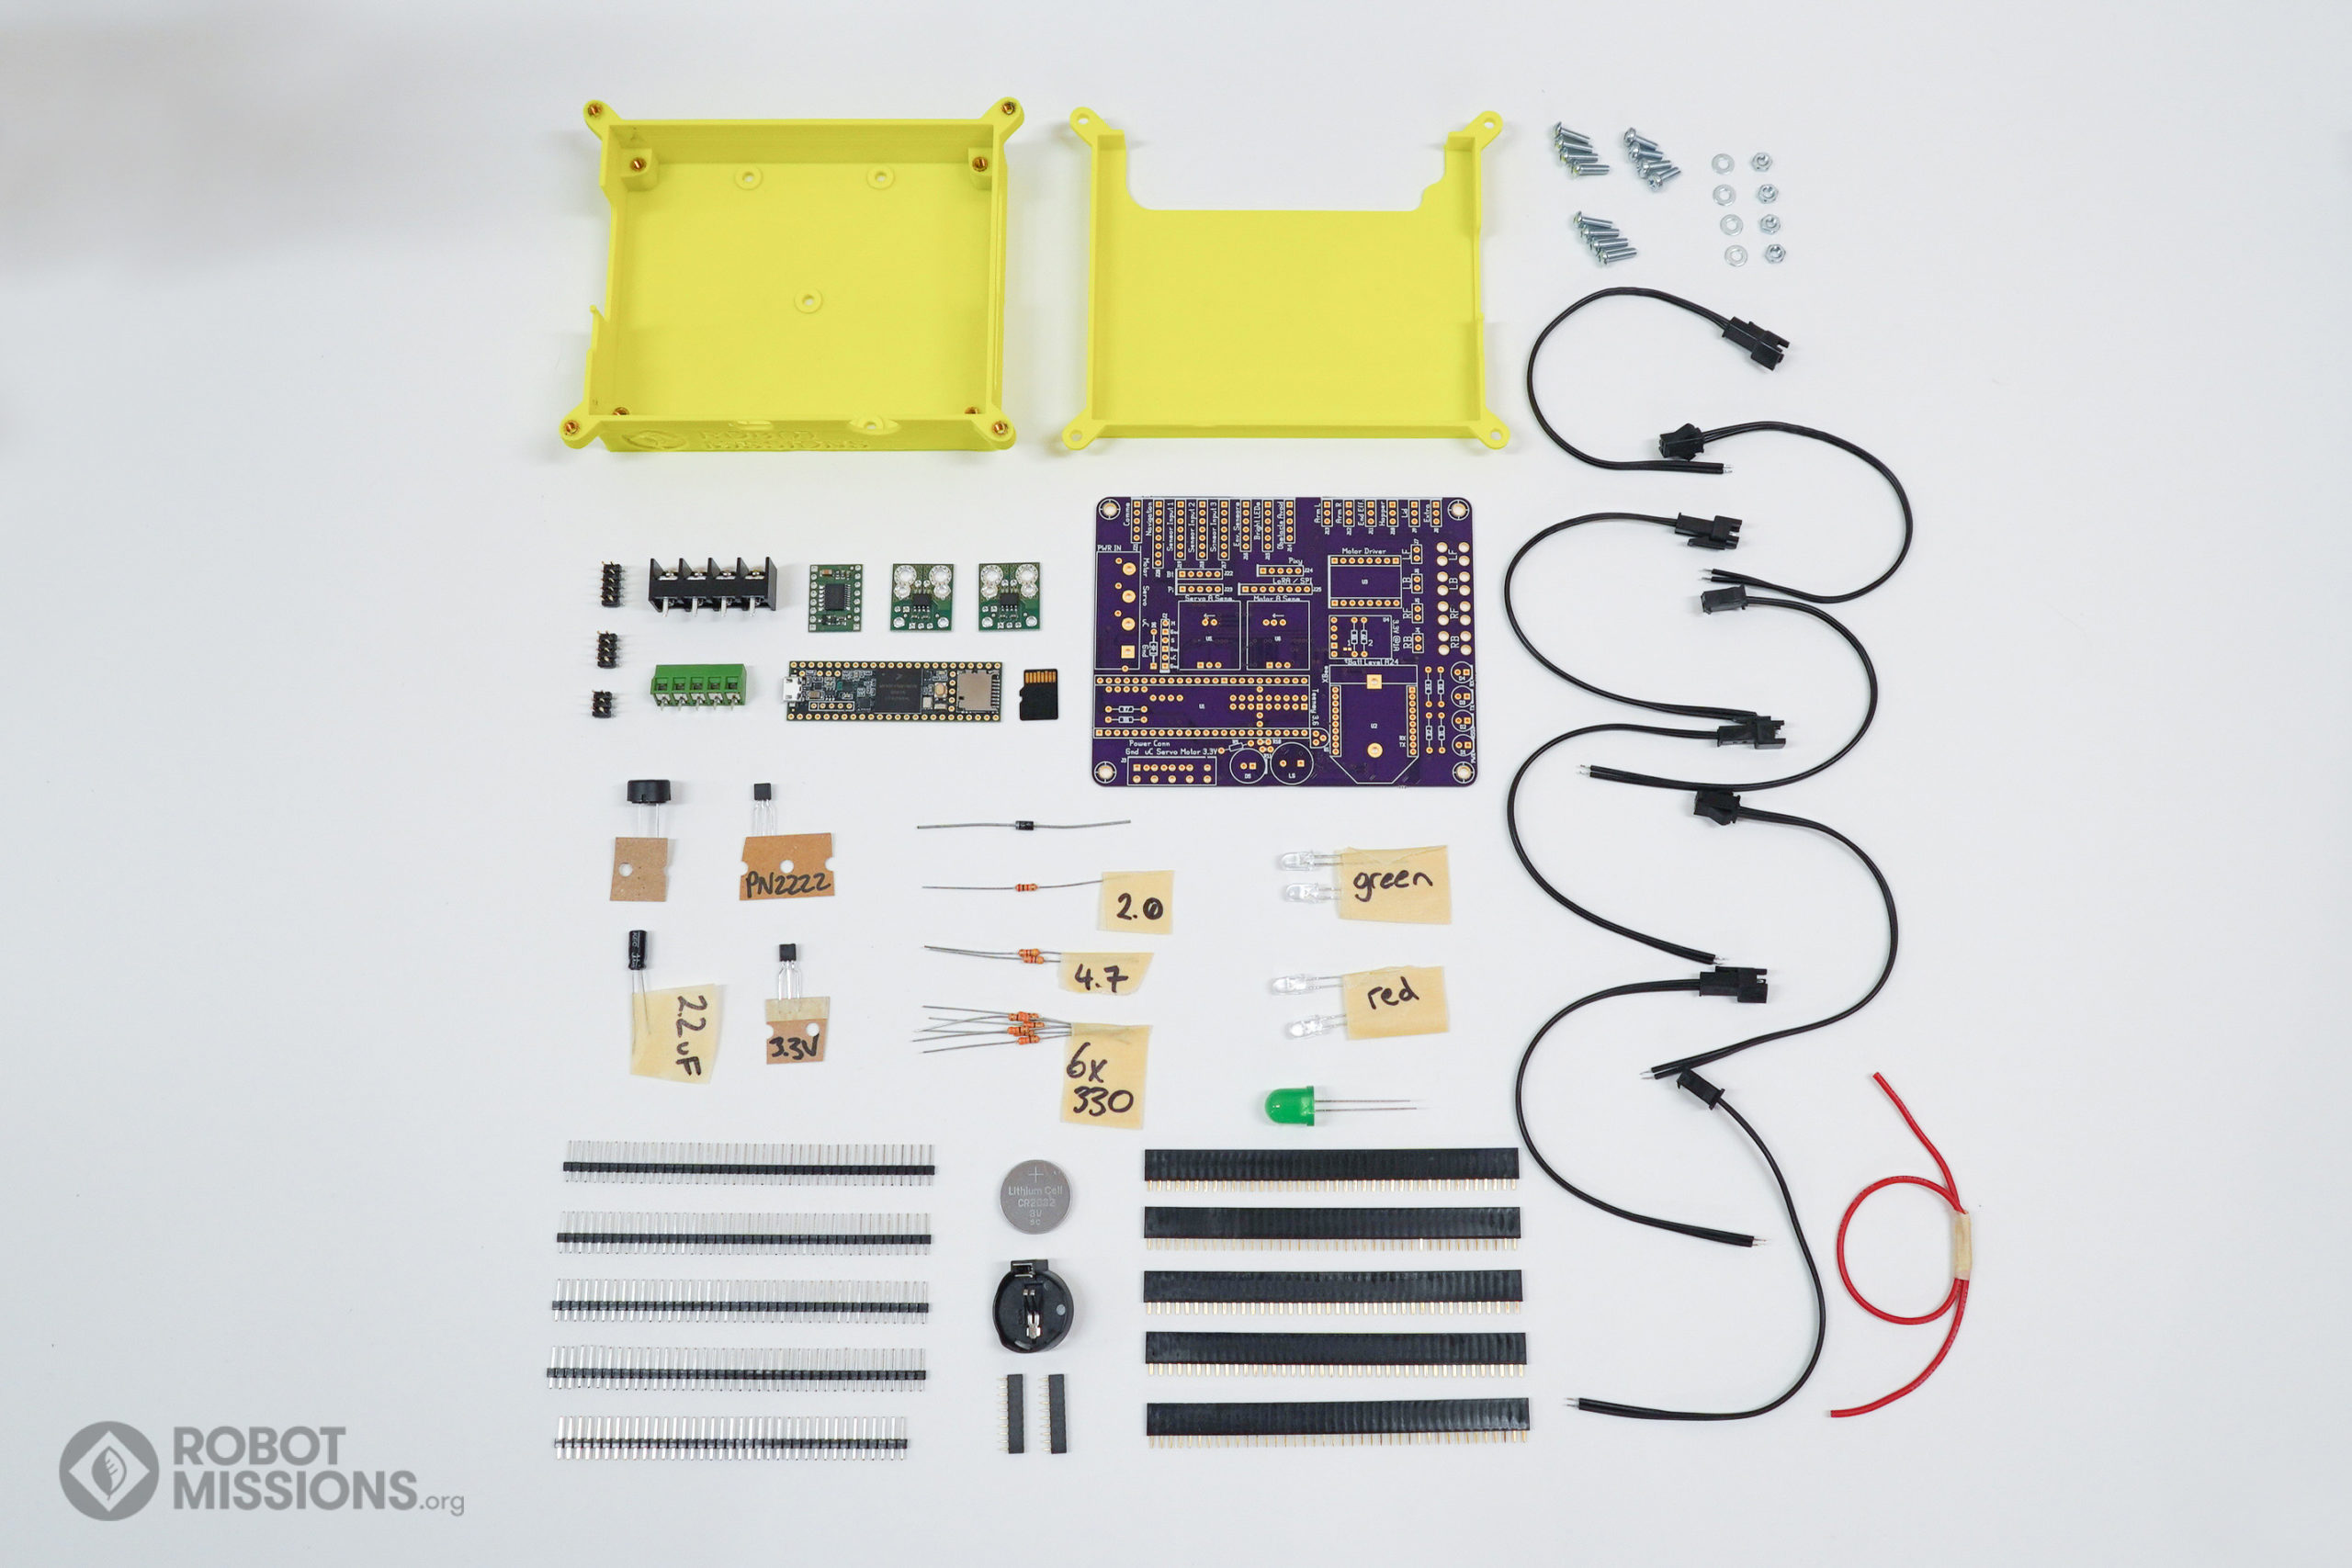 bowie_brain_board_kit_all_pieces02-full-res